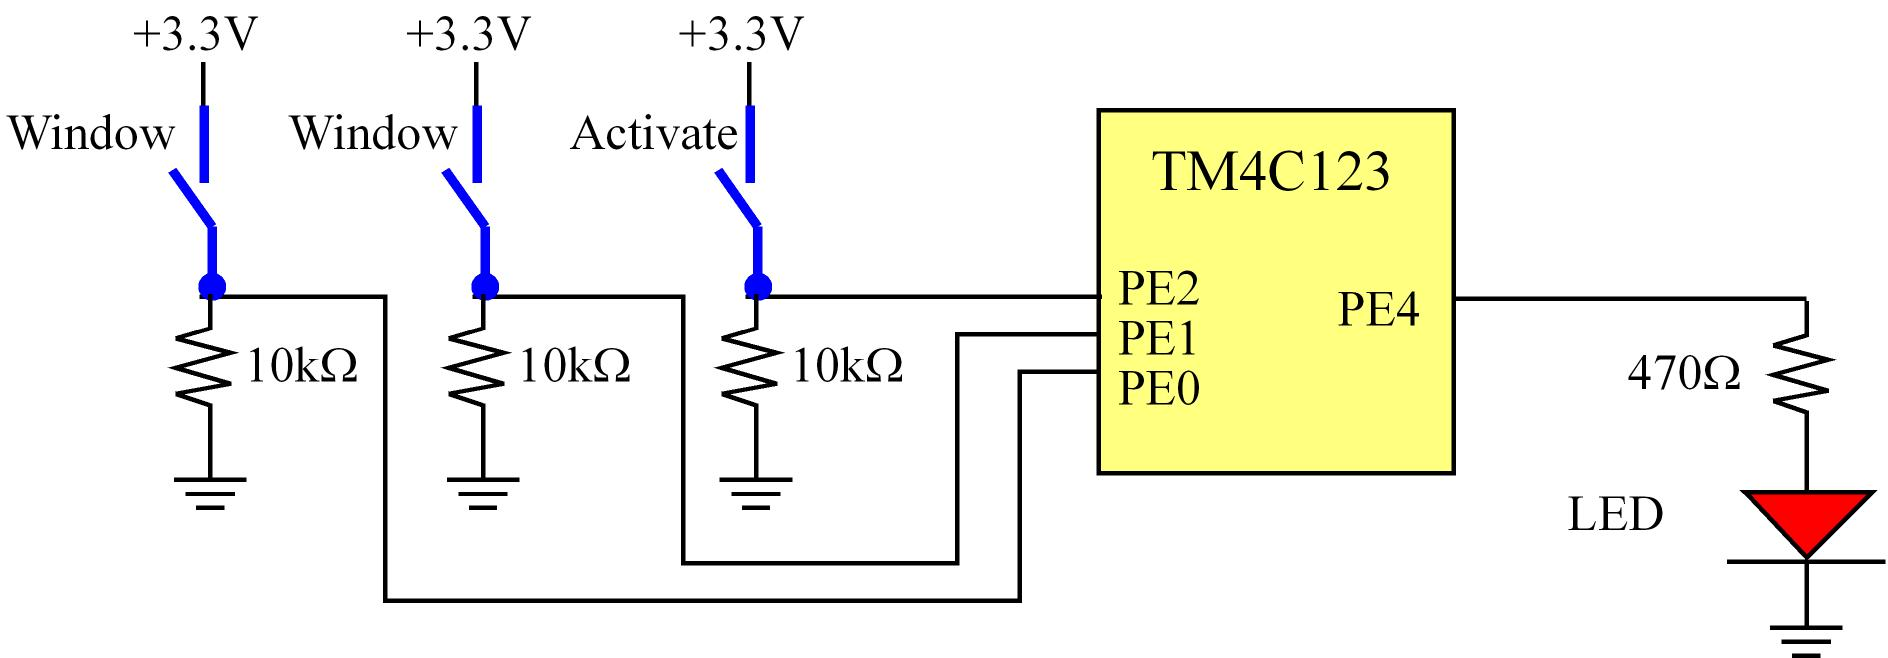 Chapter8 Switches And Leds Connect The Series Circuit As Shown In Figure Below Using 10 89 Hardware